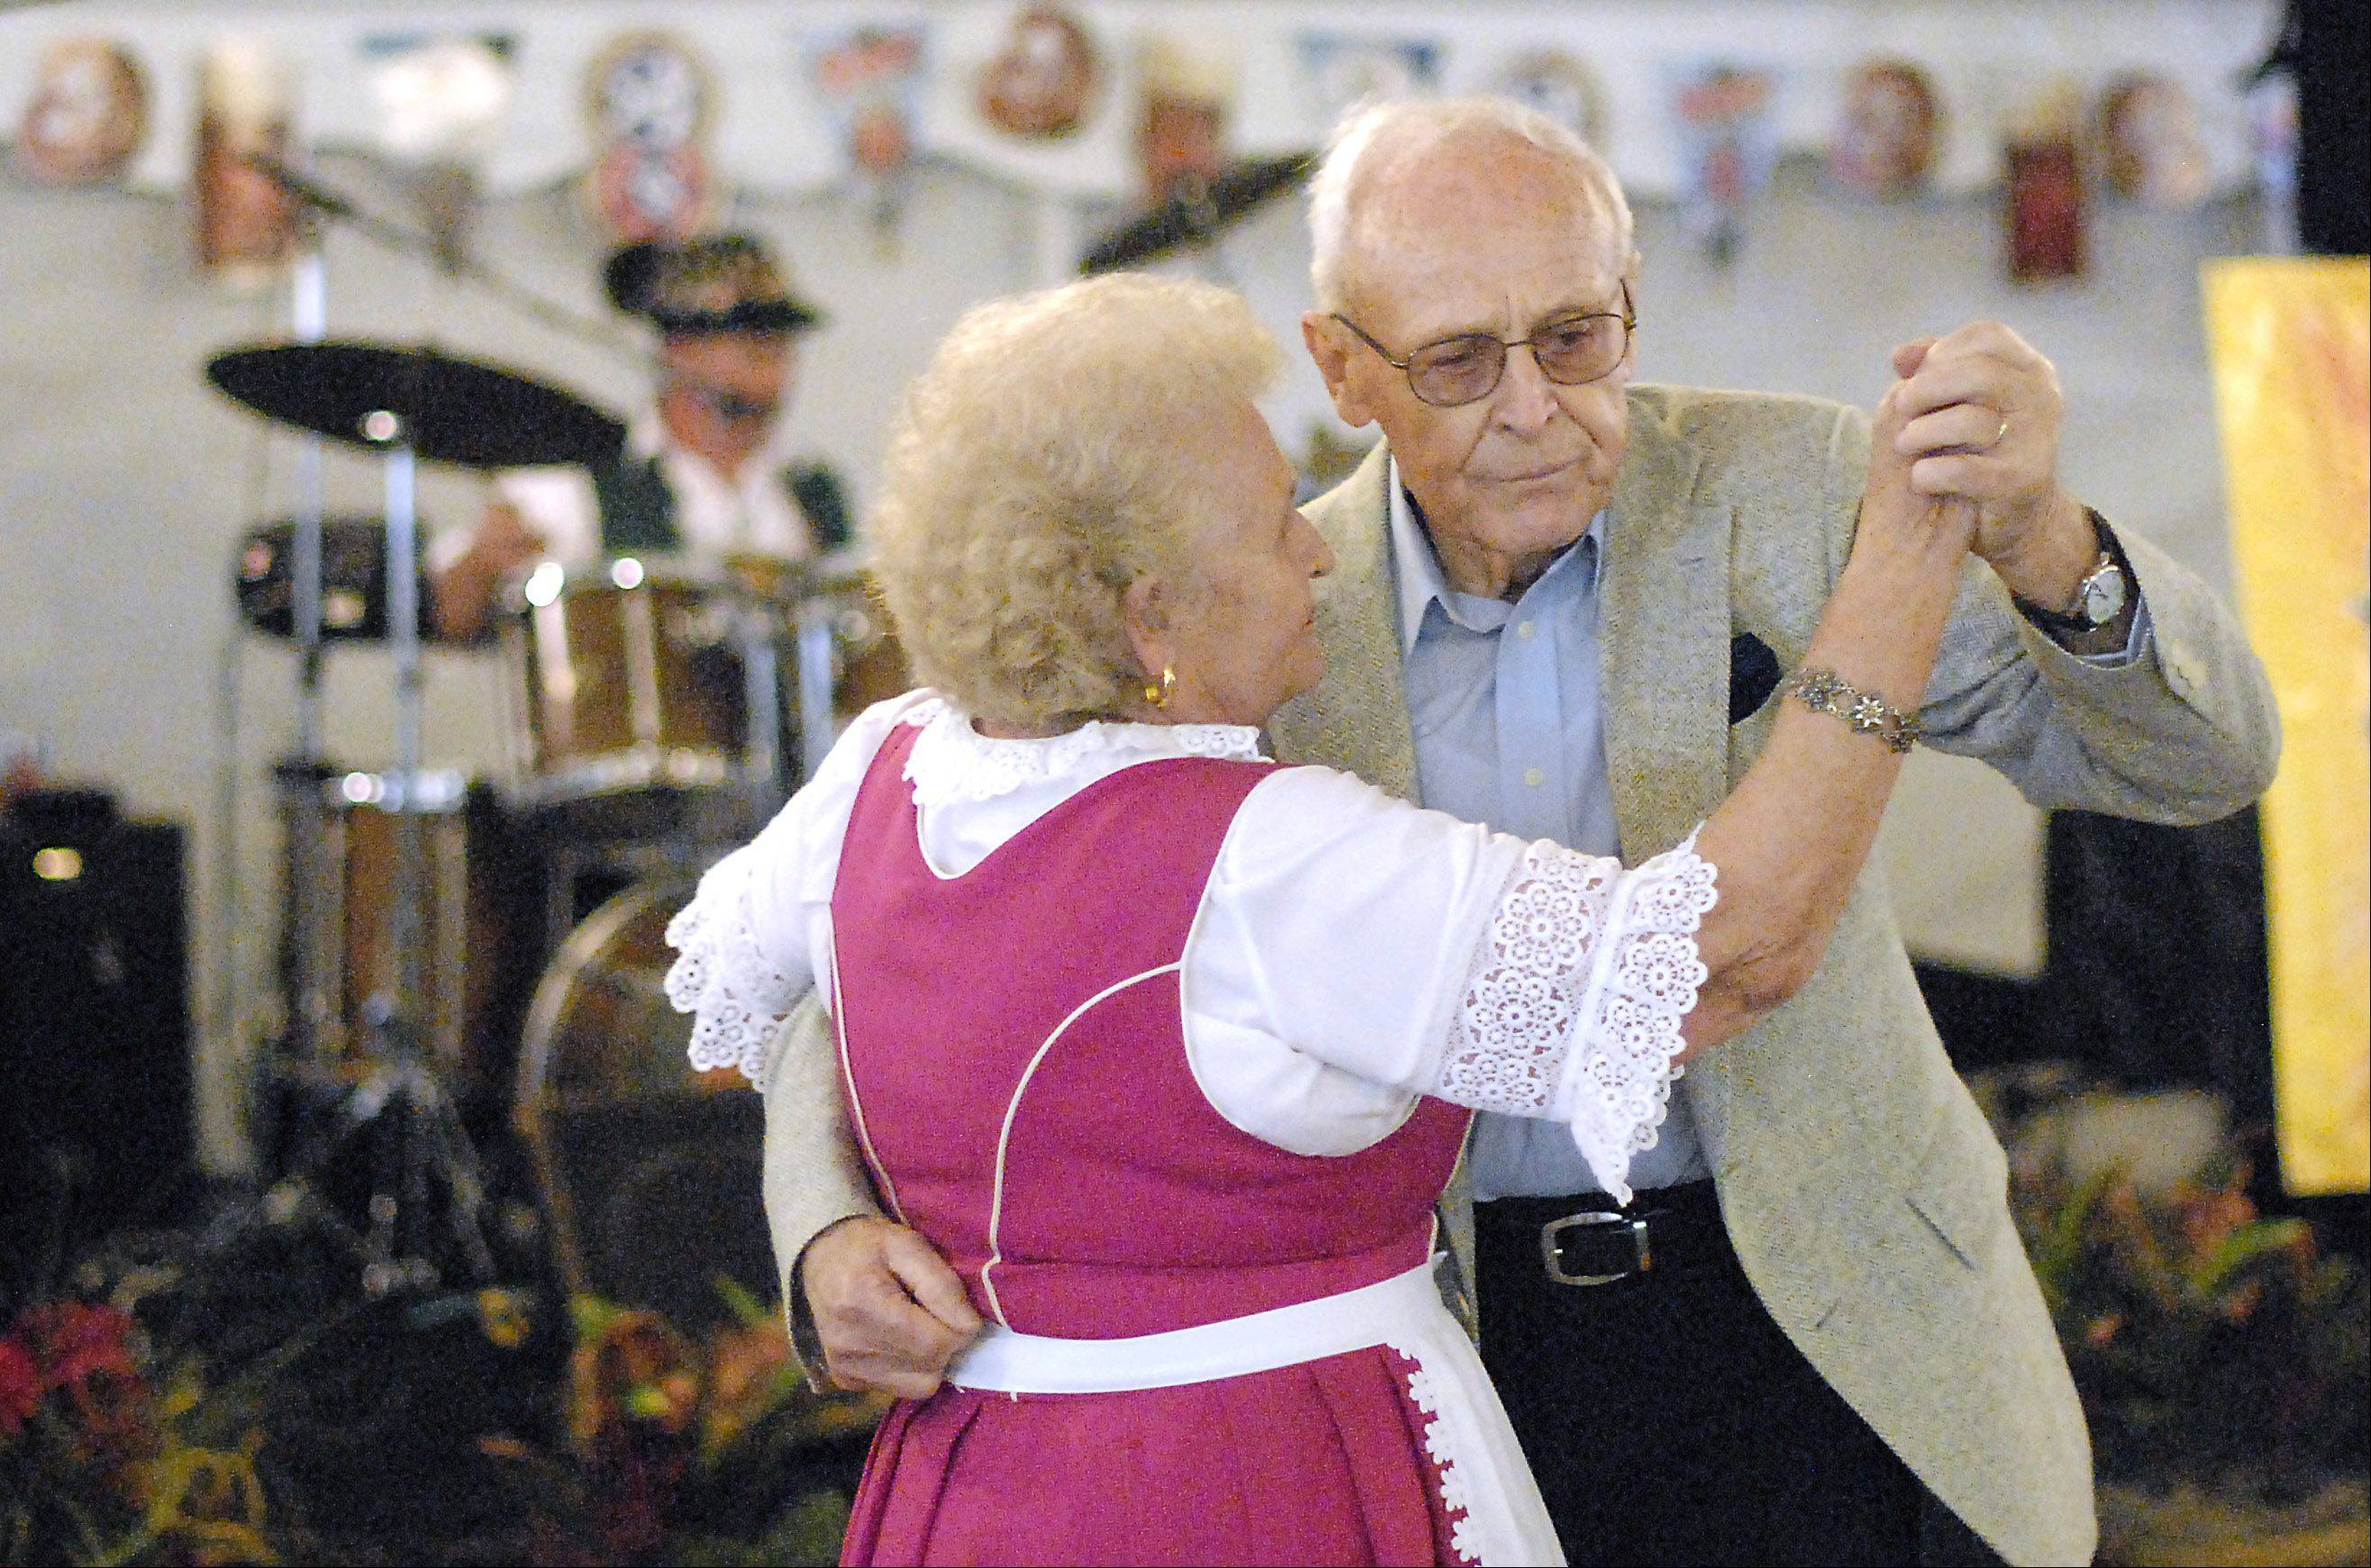 Hildegard and Frank Schreiber of Wheaton dance to the music of German band Die Perlen during the 10th annual Fox Valley Oktoberfest on Saturday in downtown Batavia. The couple has attended the festival every year since it started.